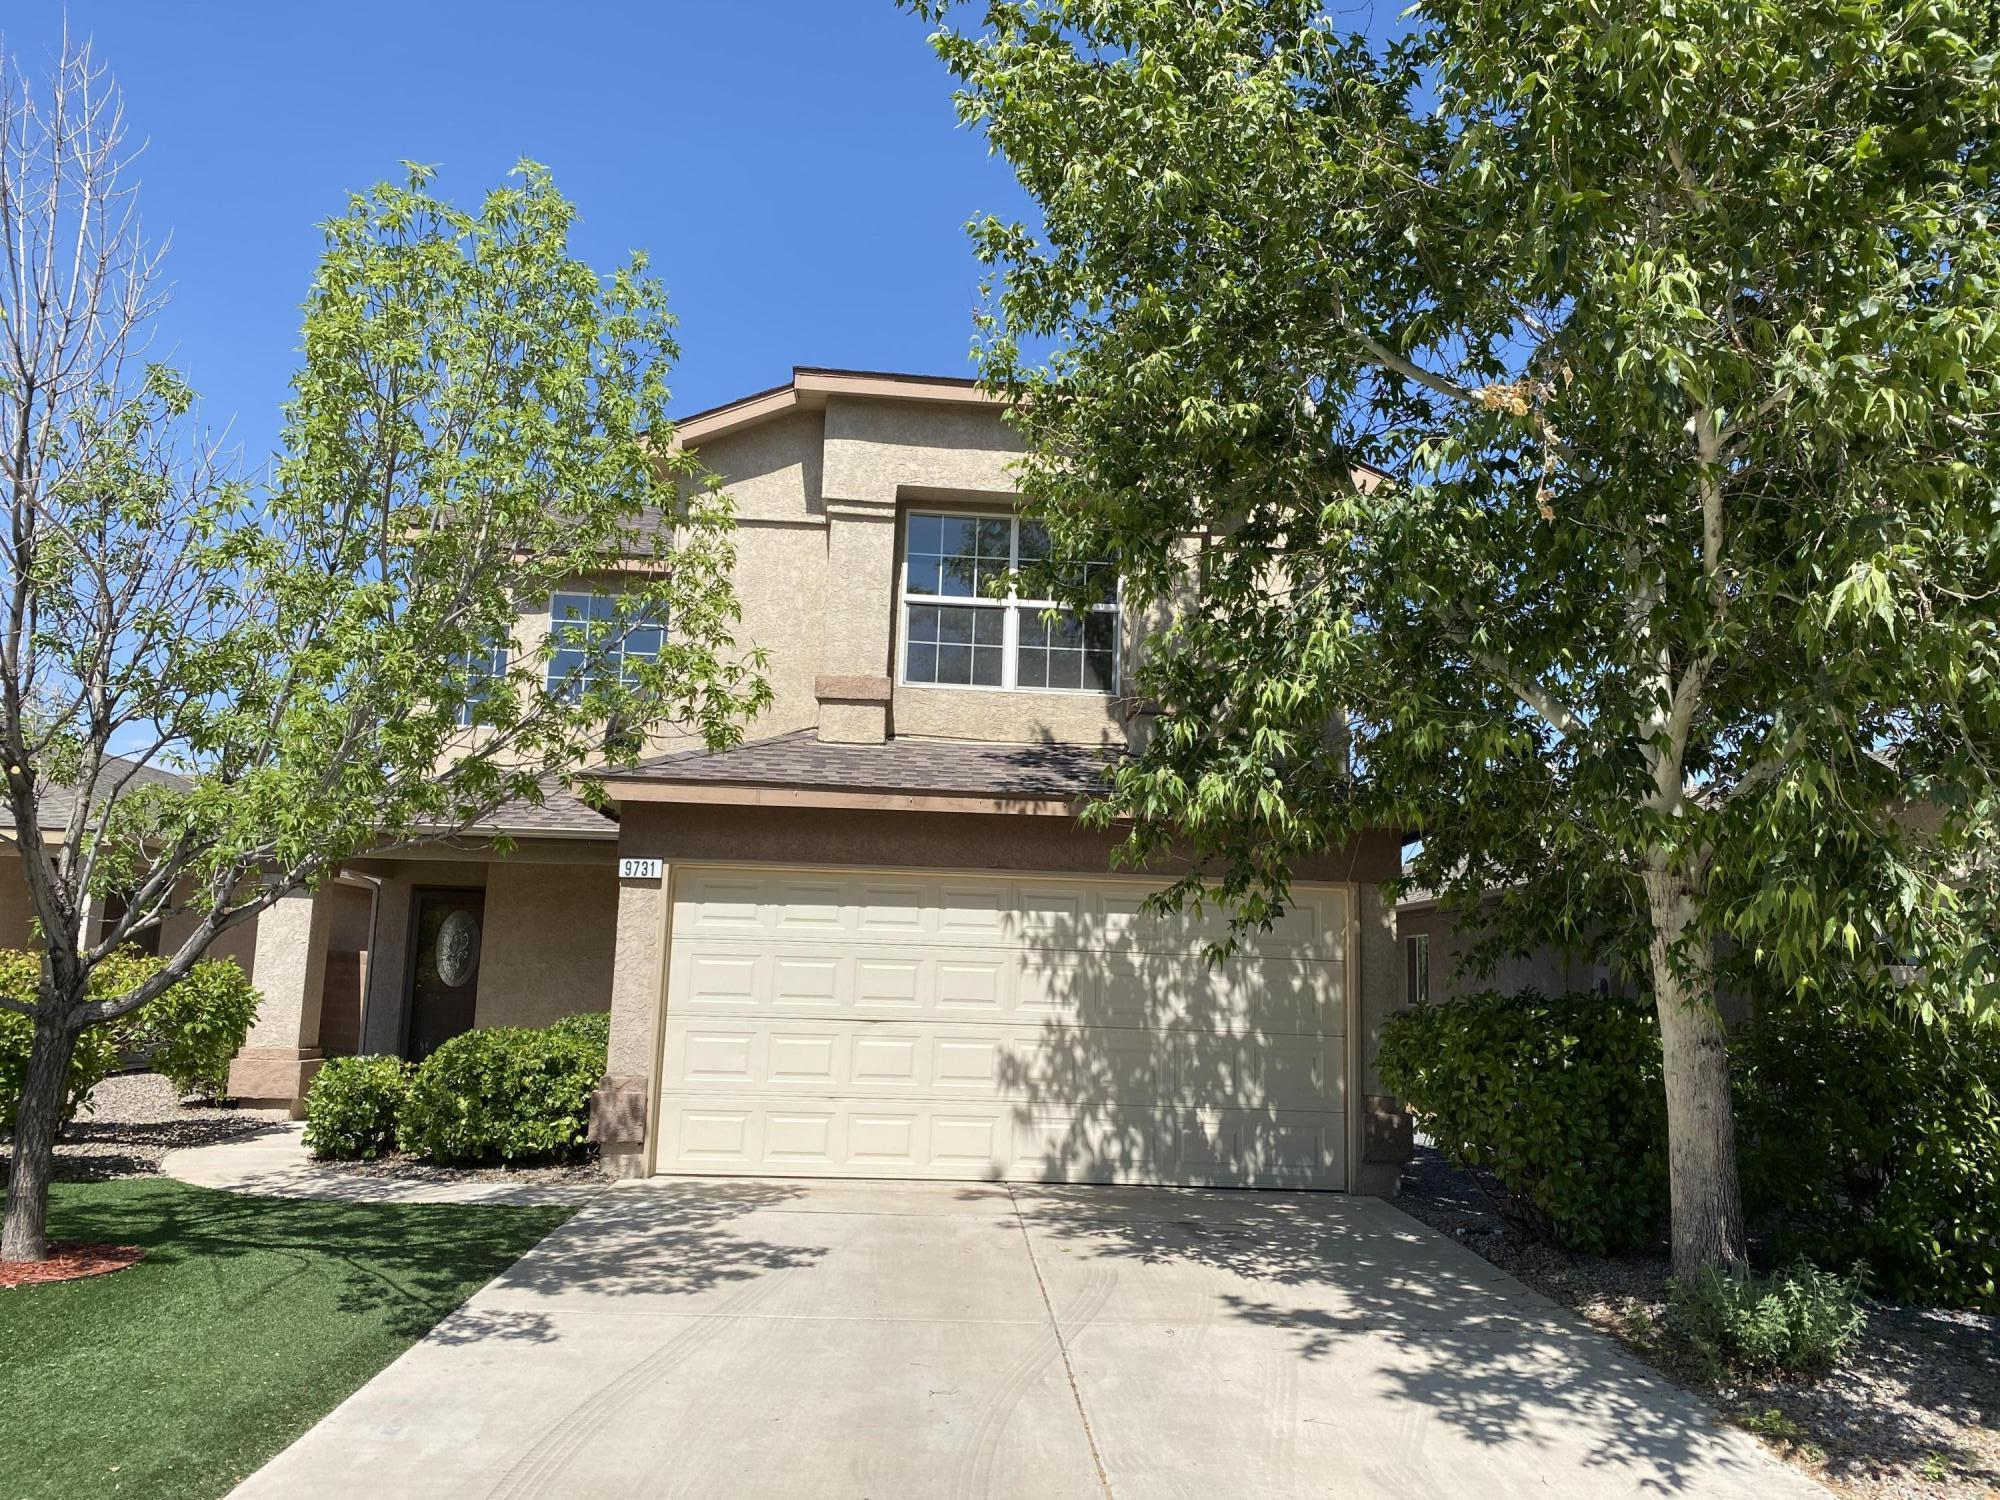 Super Sharp Home in Gated Community. Clean & Freshly Painted, New Carpet and New Evaporative Cooler. Three Bedrooms plus a Loft/FamilyRoom or Potential 4th Bedroom. Shady Back Yard with a Covered Patio. Also, Deck off the Master Bedroom Suite. Move in Condition!